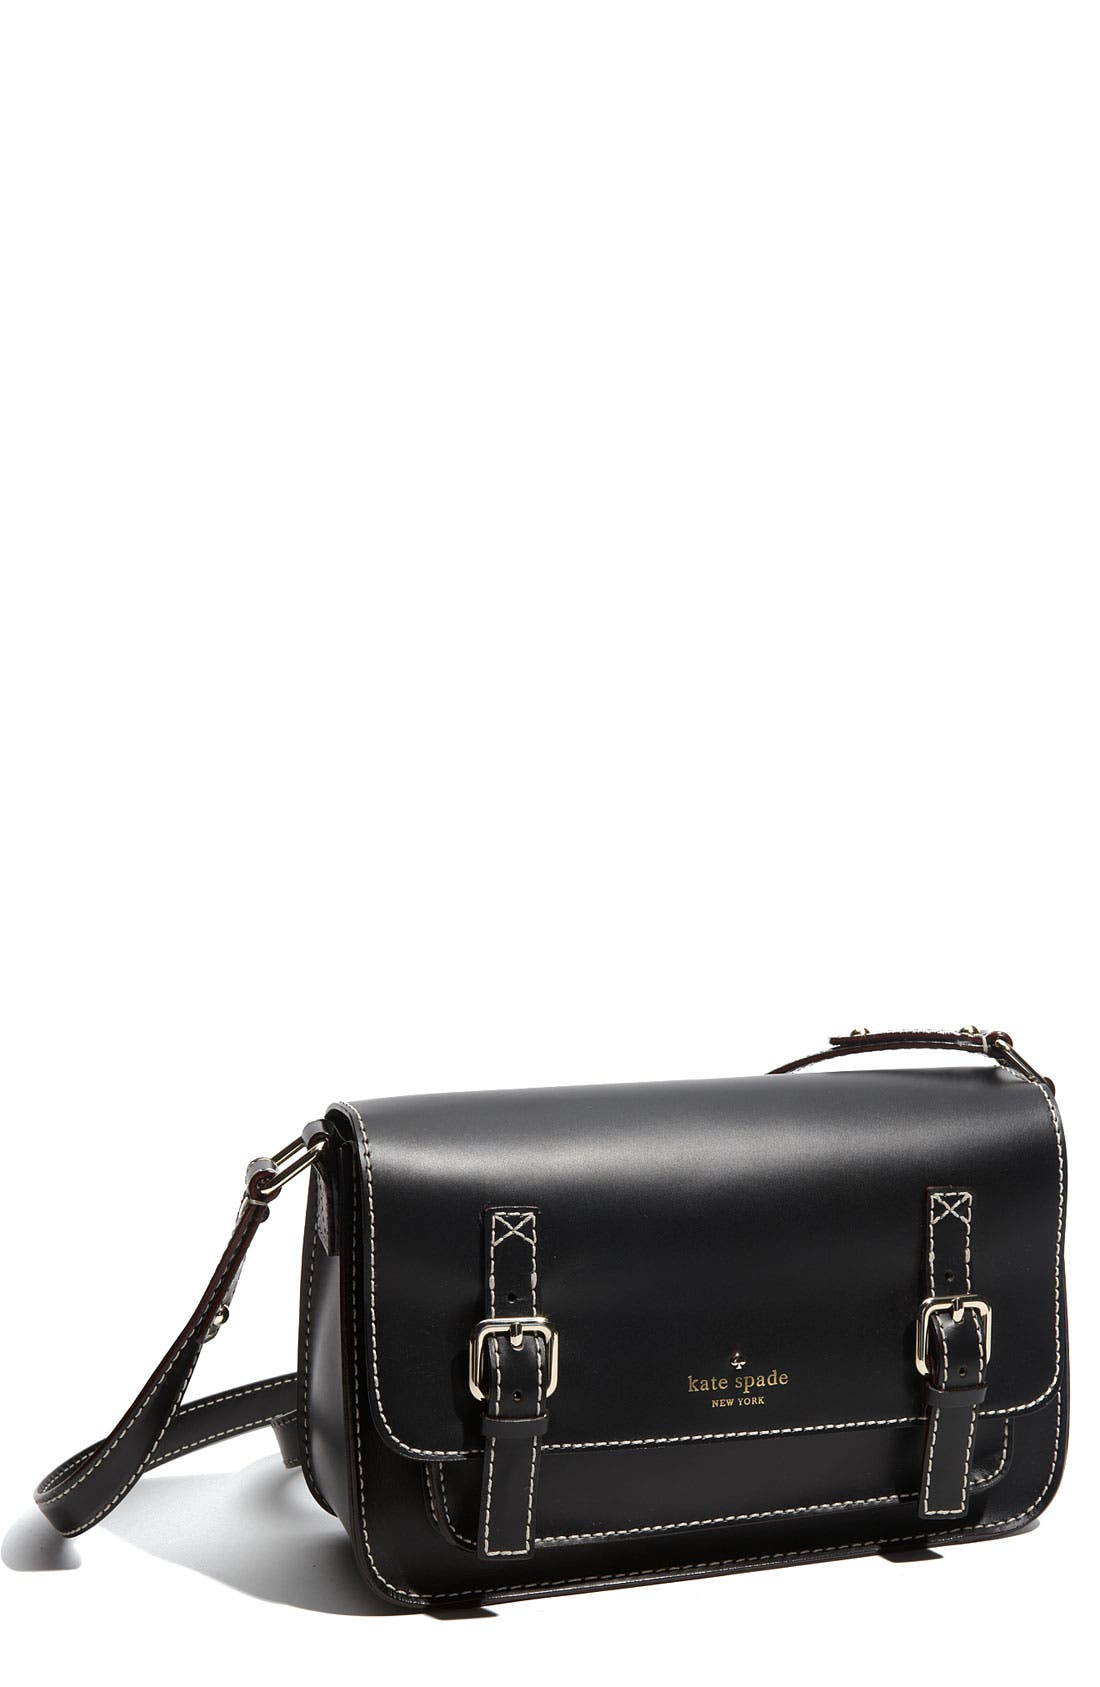 Main Image - kate spade new york 'essex scout' leather flap crossbody bag